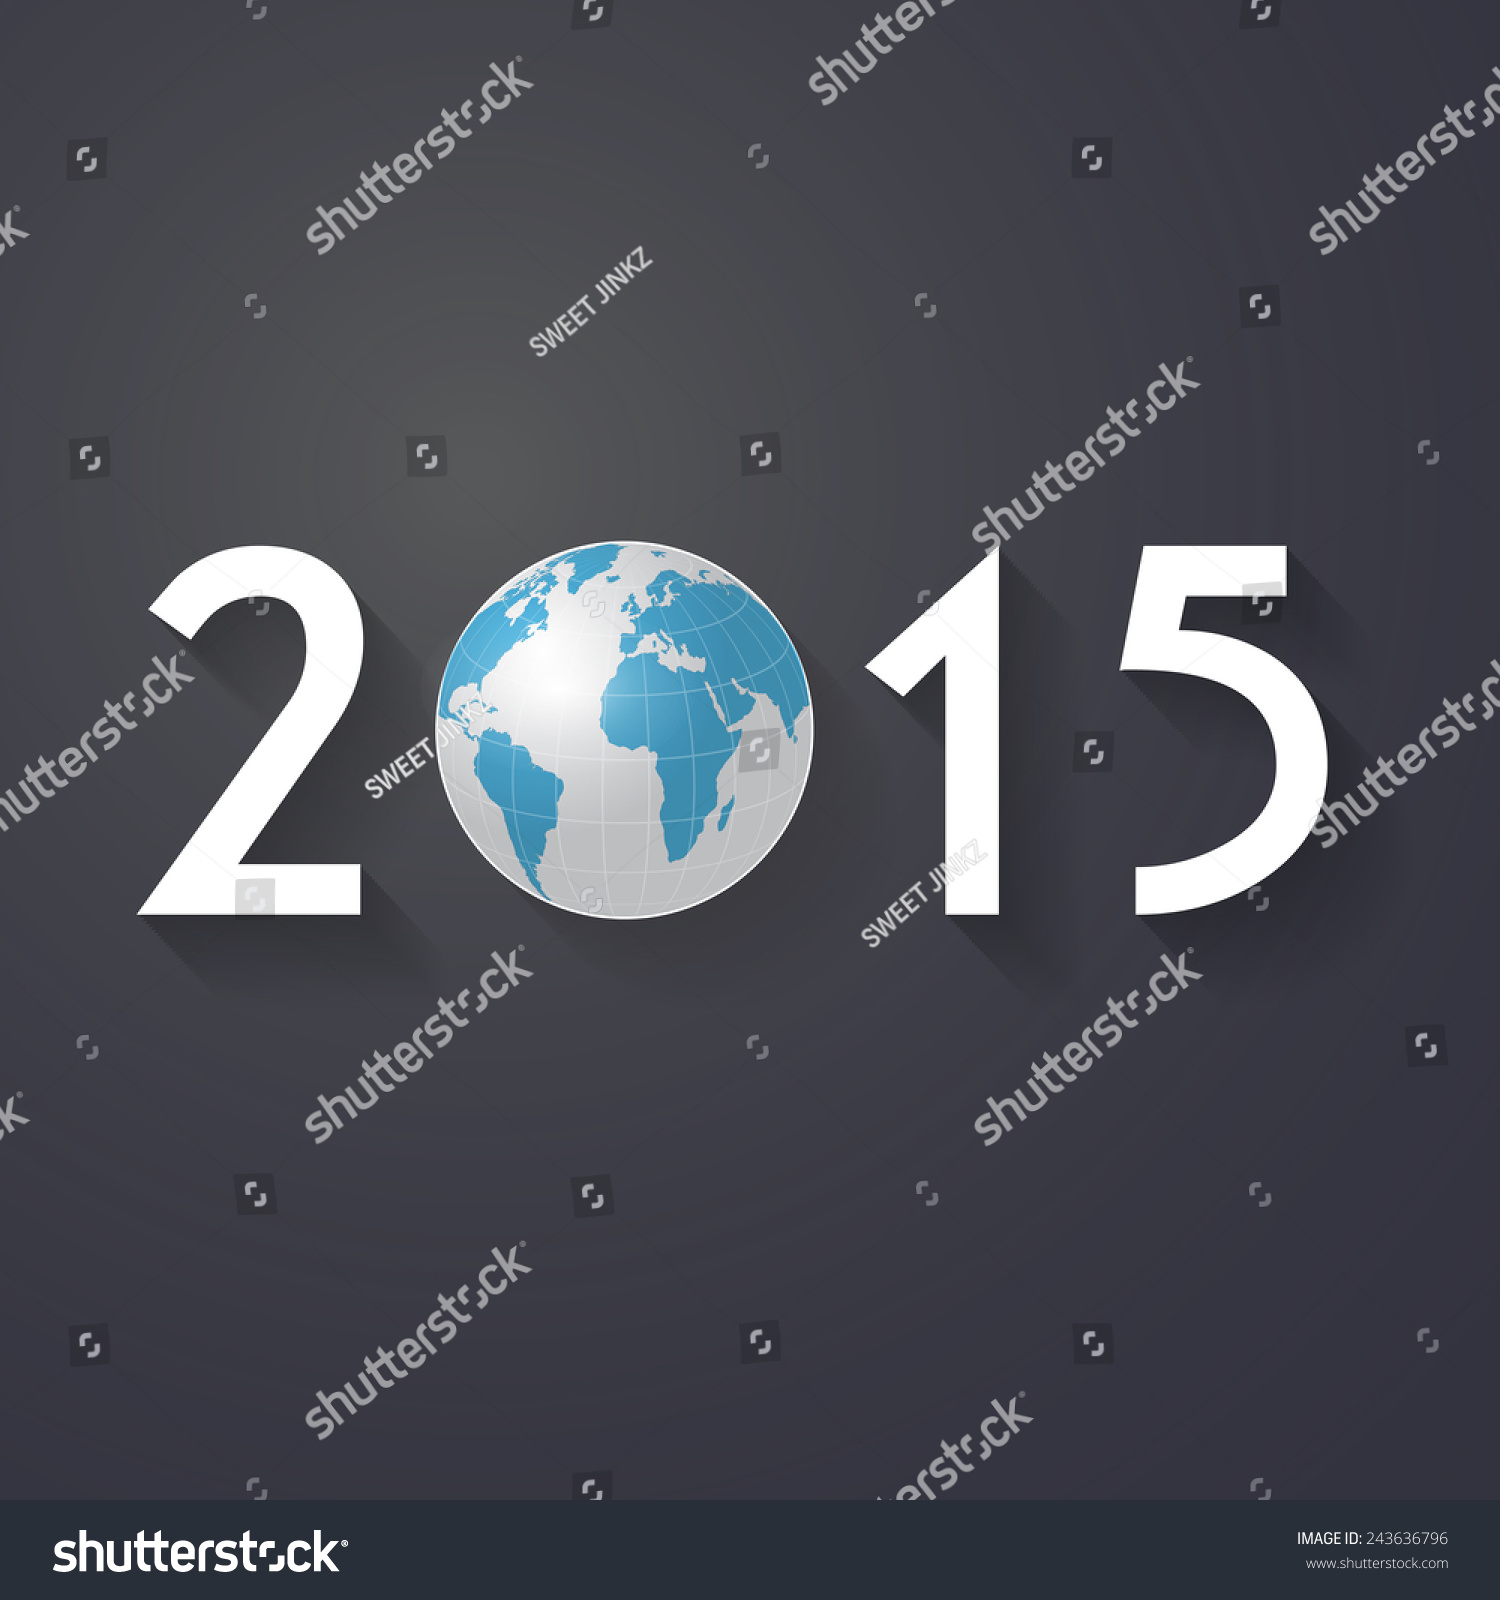 Vector modern simple happy new year vectores en stock 243636796 vector modern simple happy new year 2015 and 3d world map wallpaper with a long shadow gumiabroncs Gallery